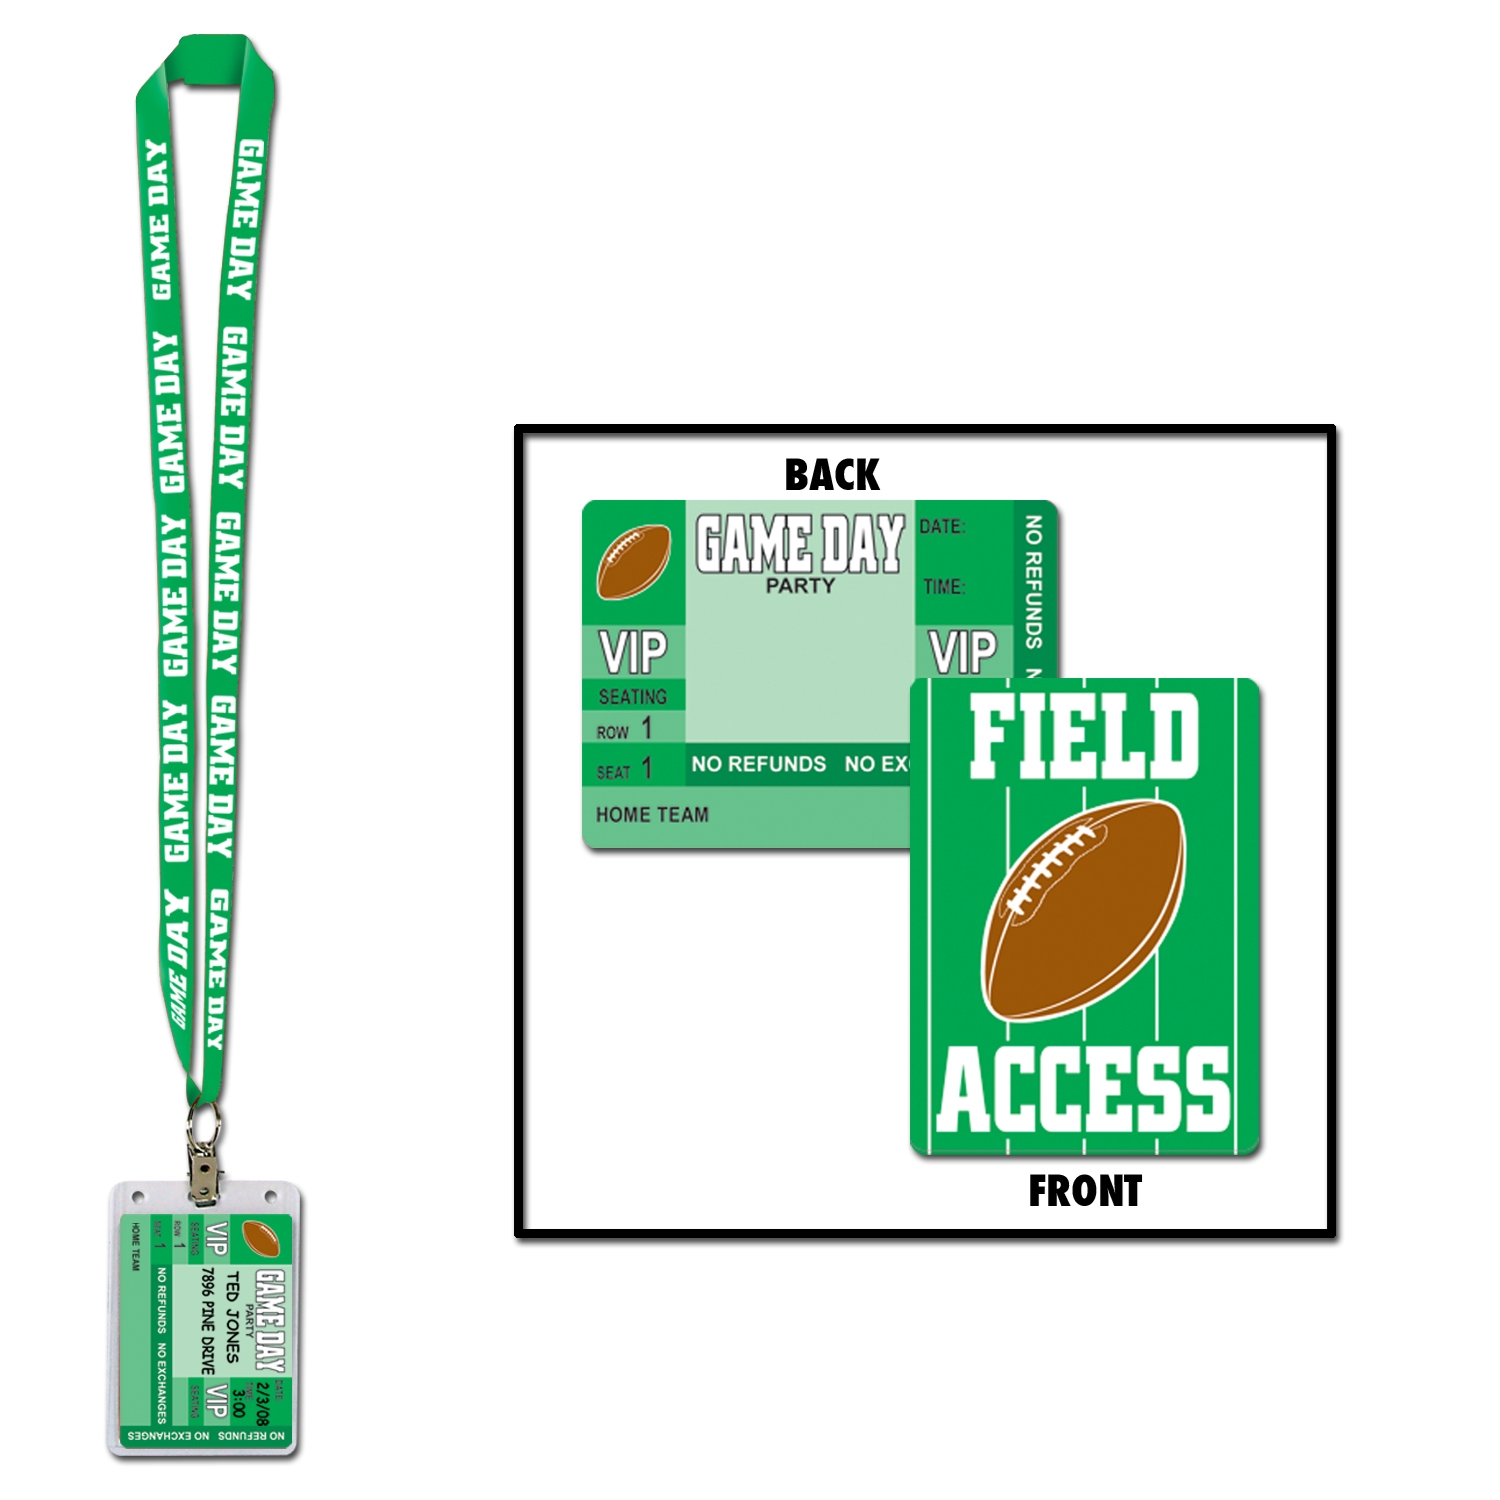 Game Day Football Party Pass (Pack of 12) football, sports, game day pass, game day, football game